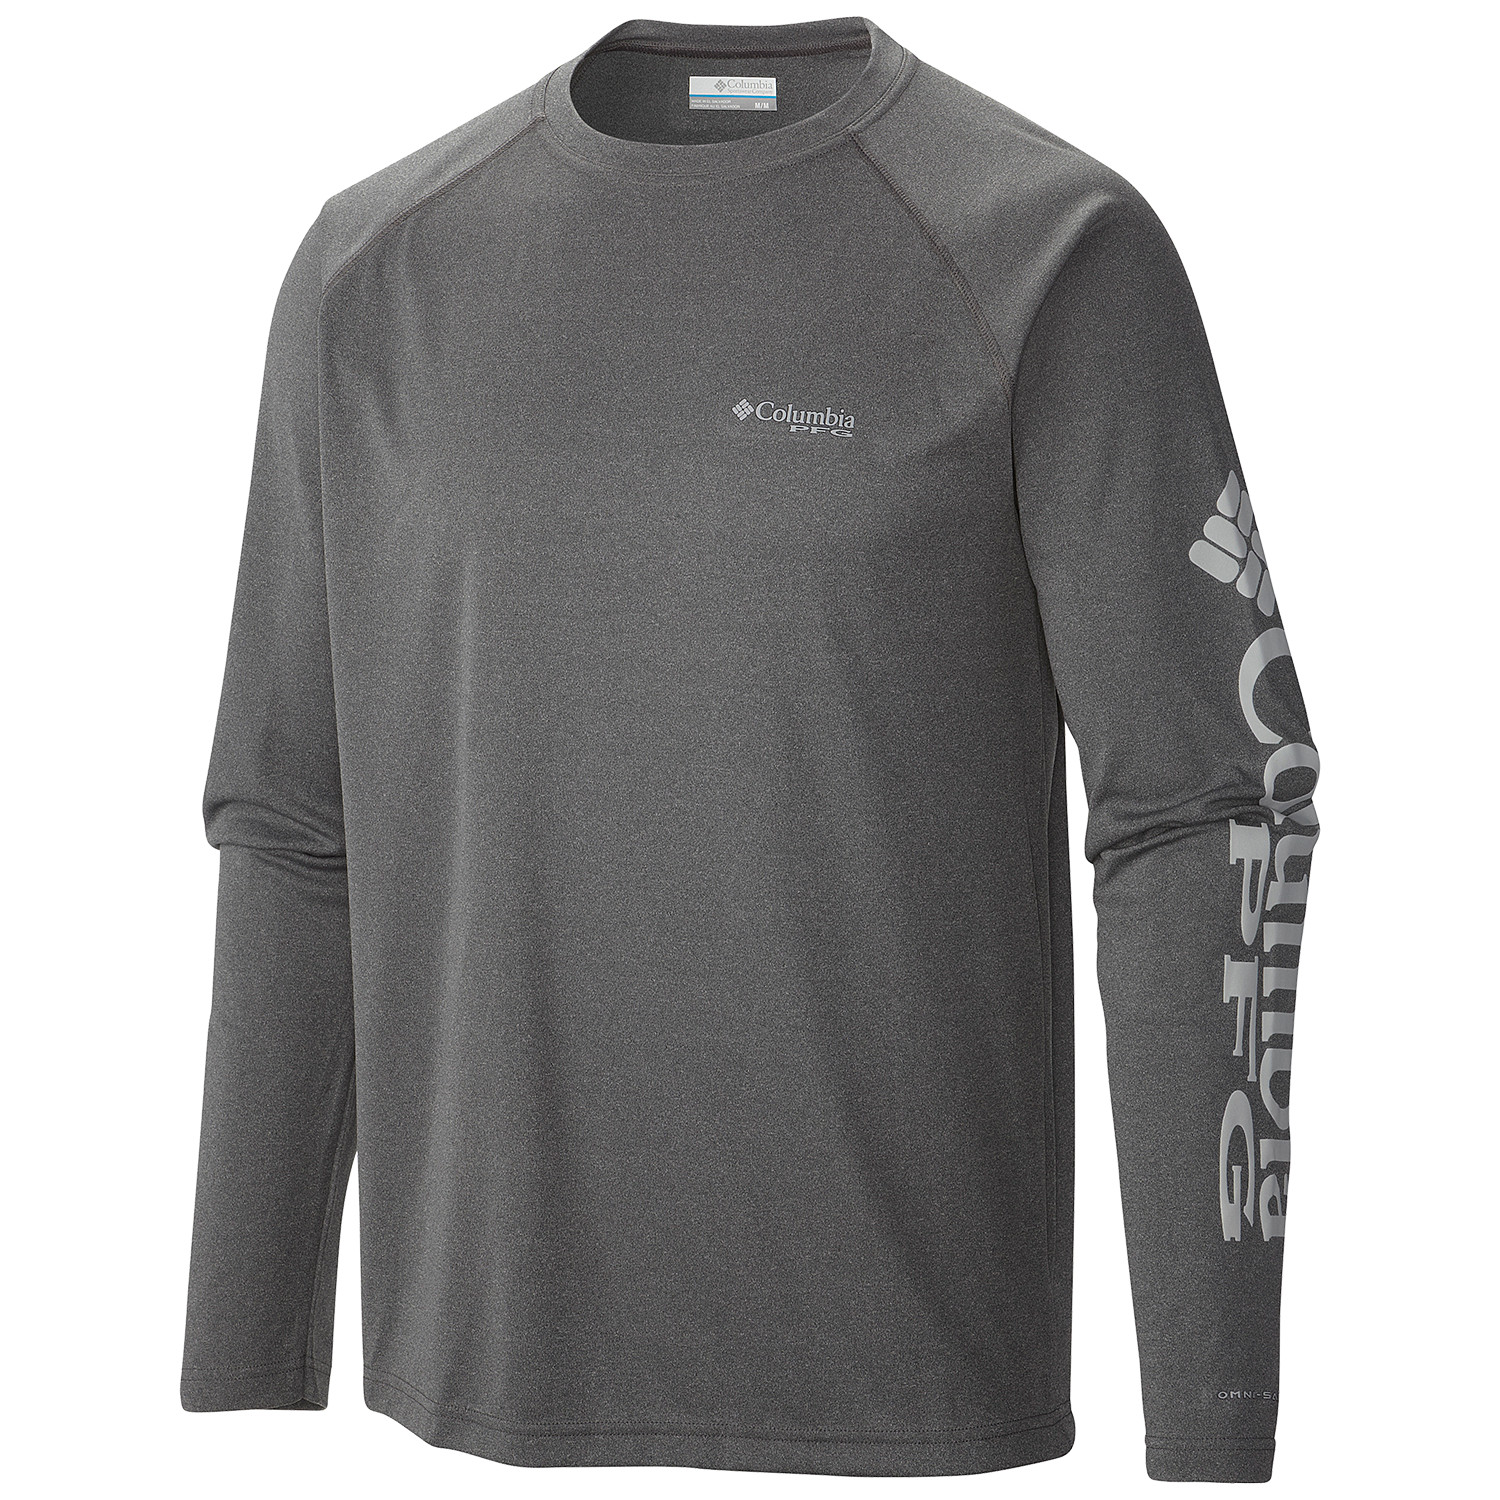 Columbia 1388261 - Men's PFG Terminal Tackle Long-Sleeve ...